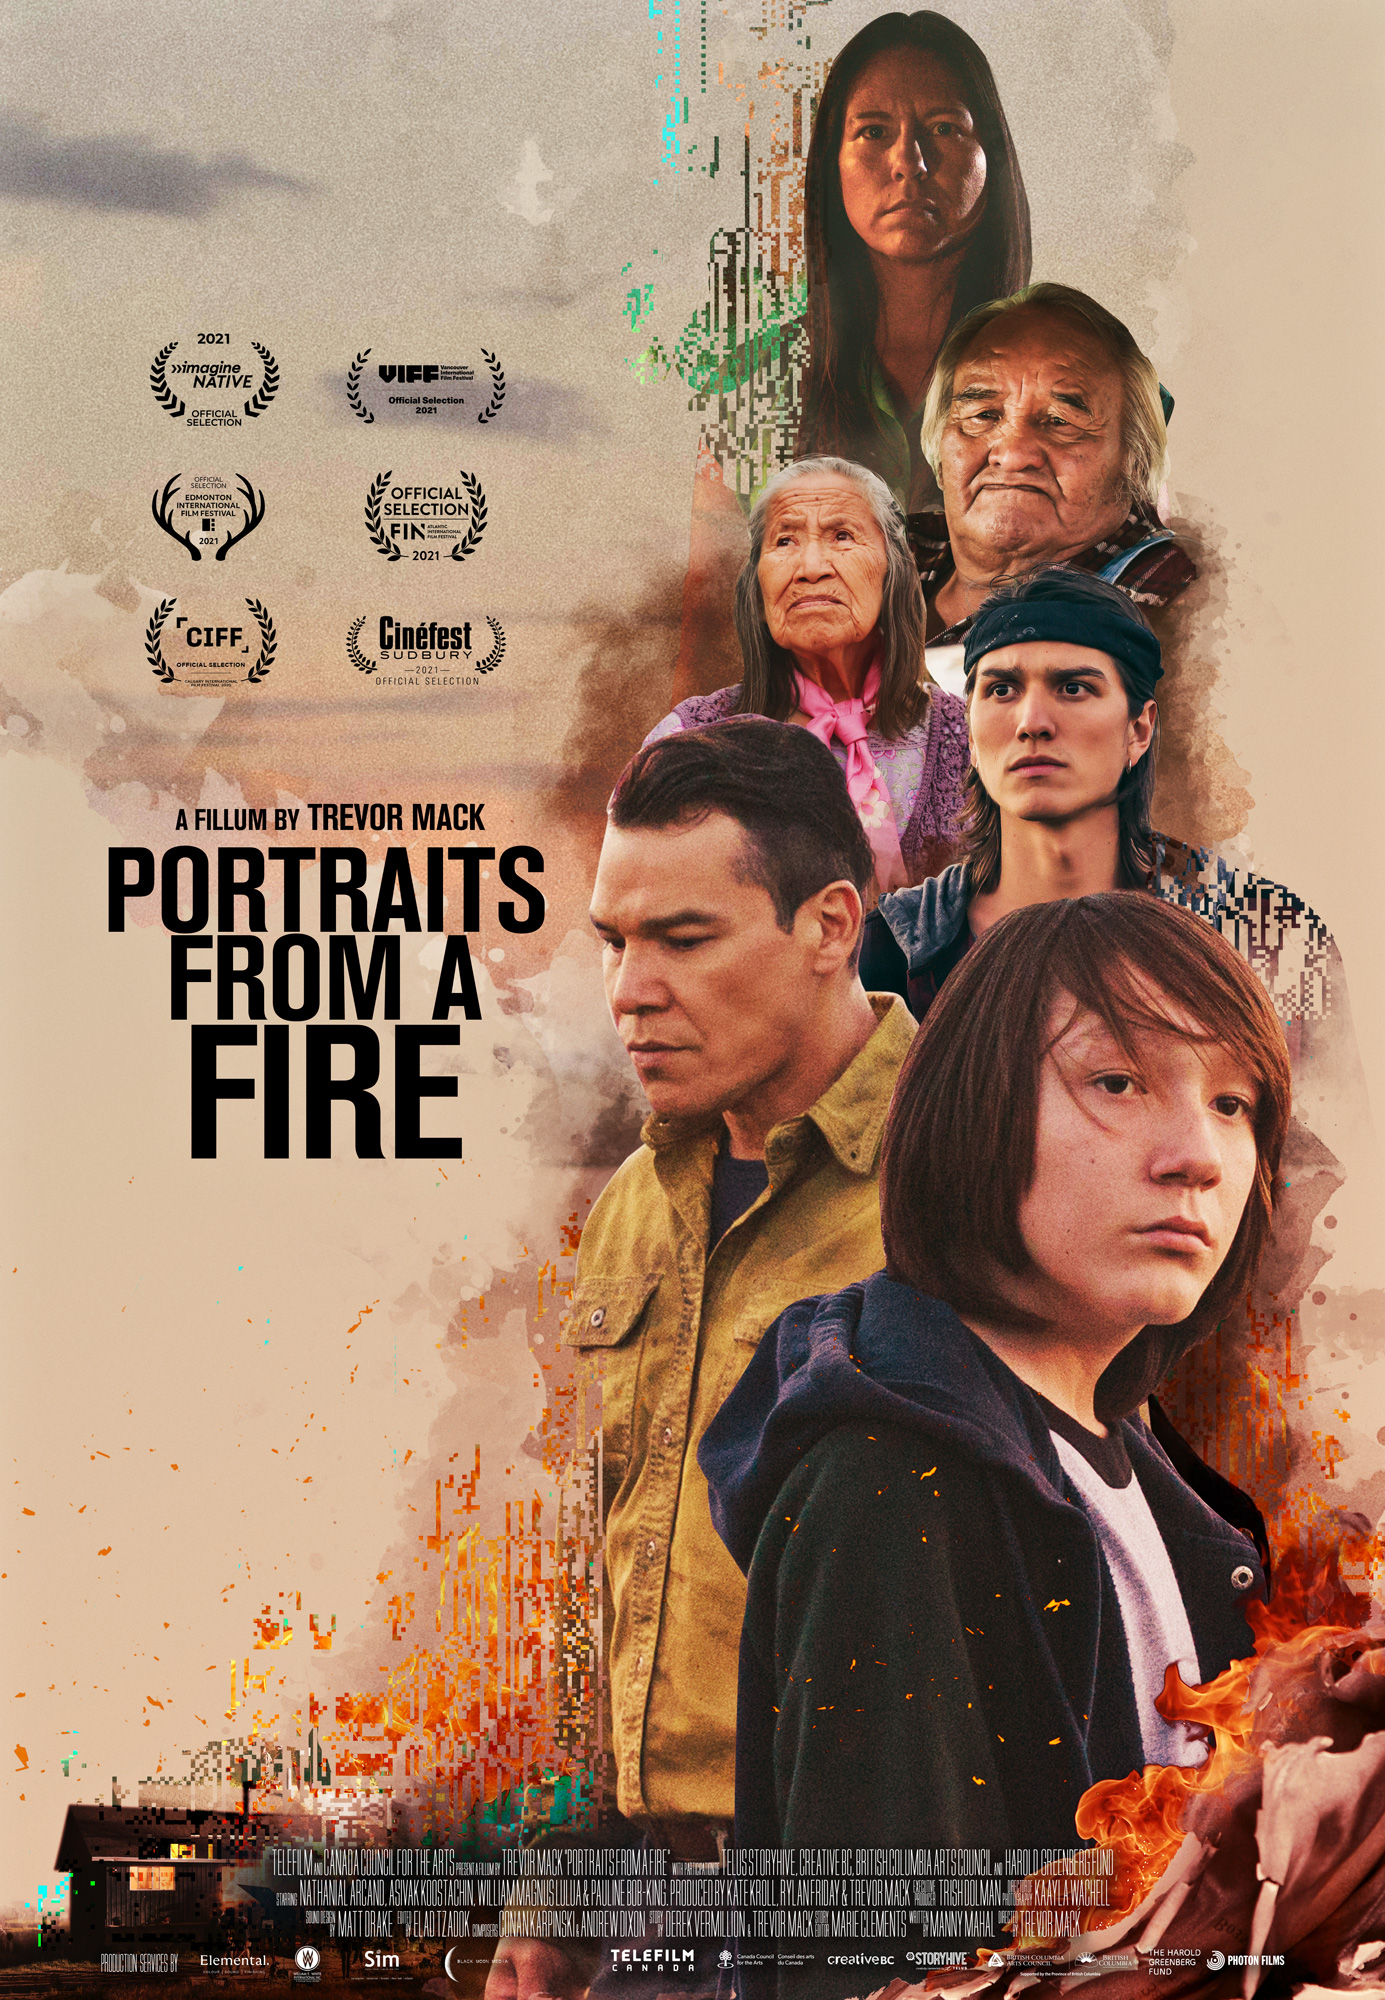 Portraits From a Fire